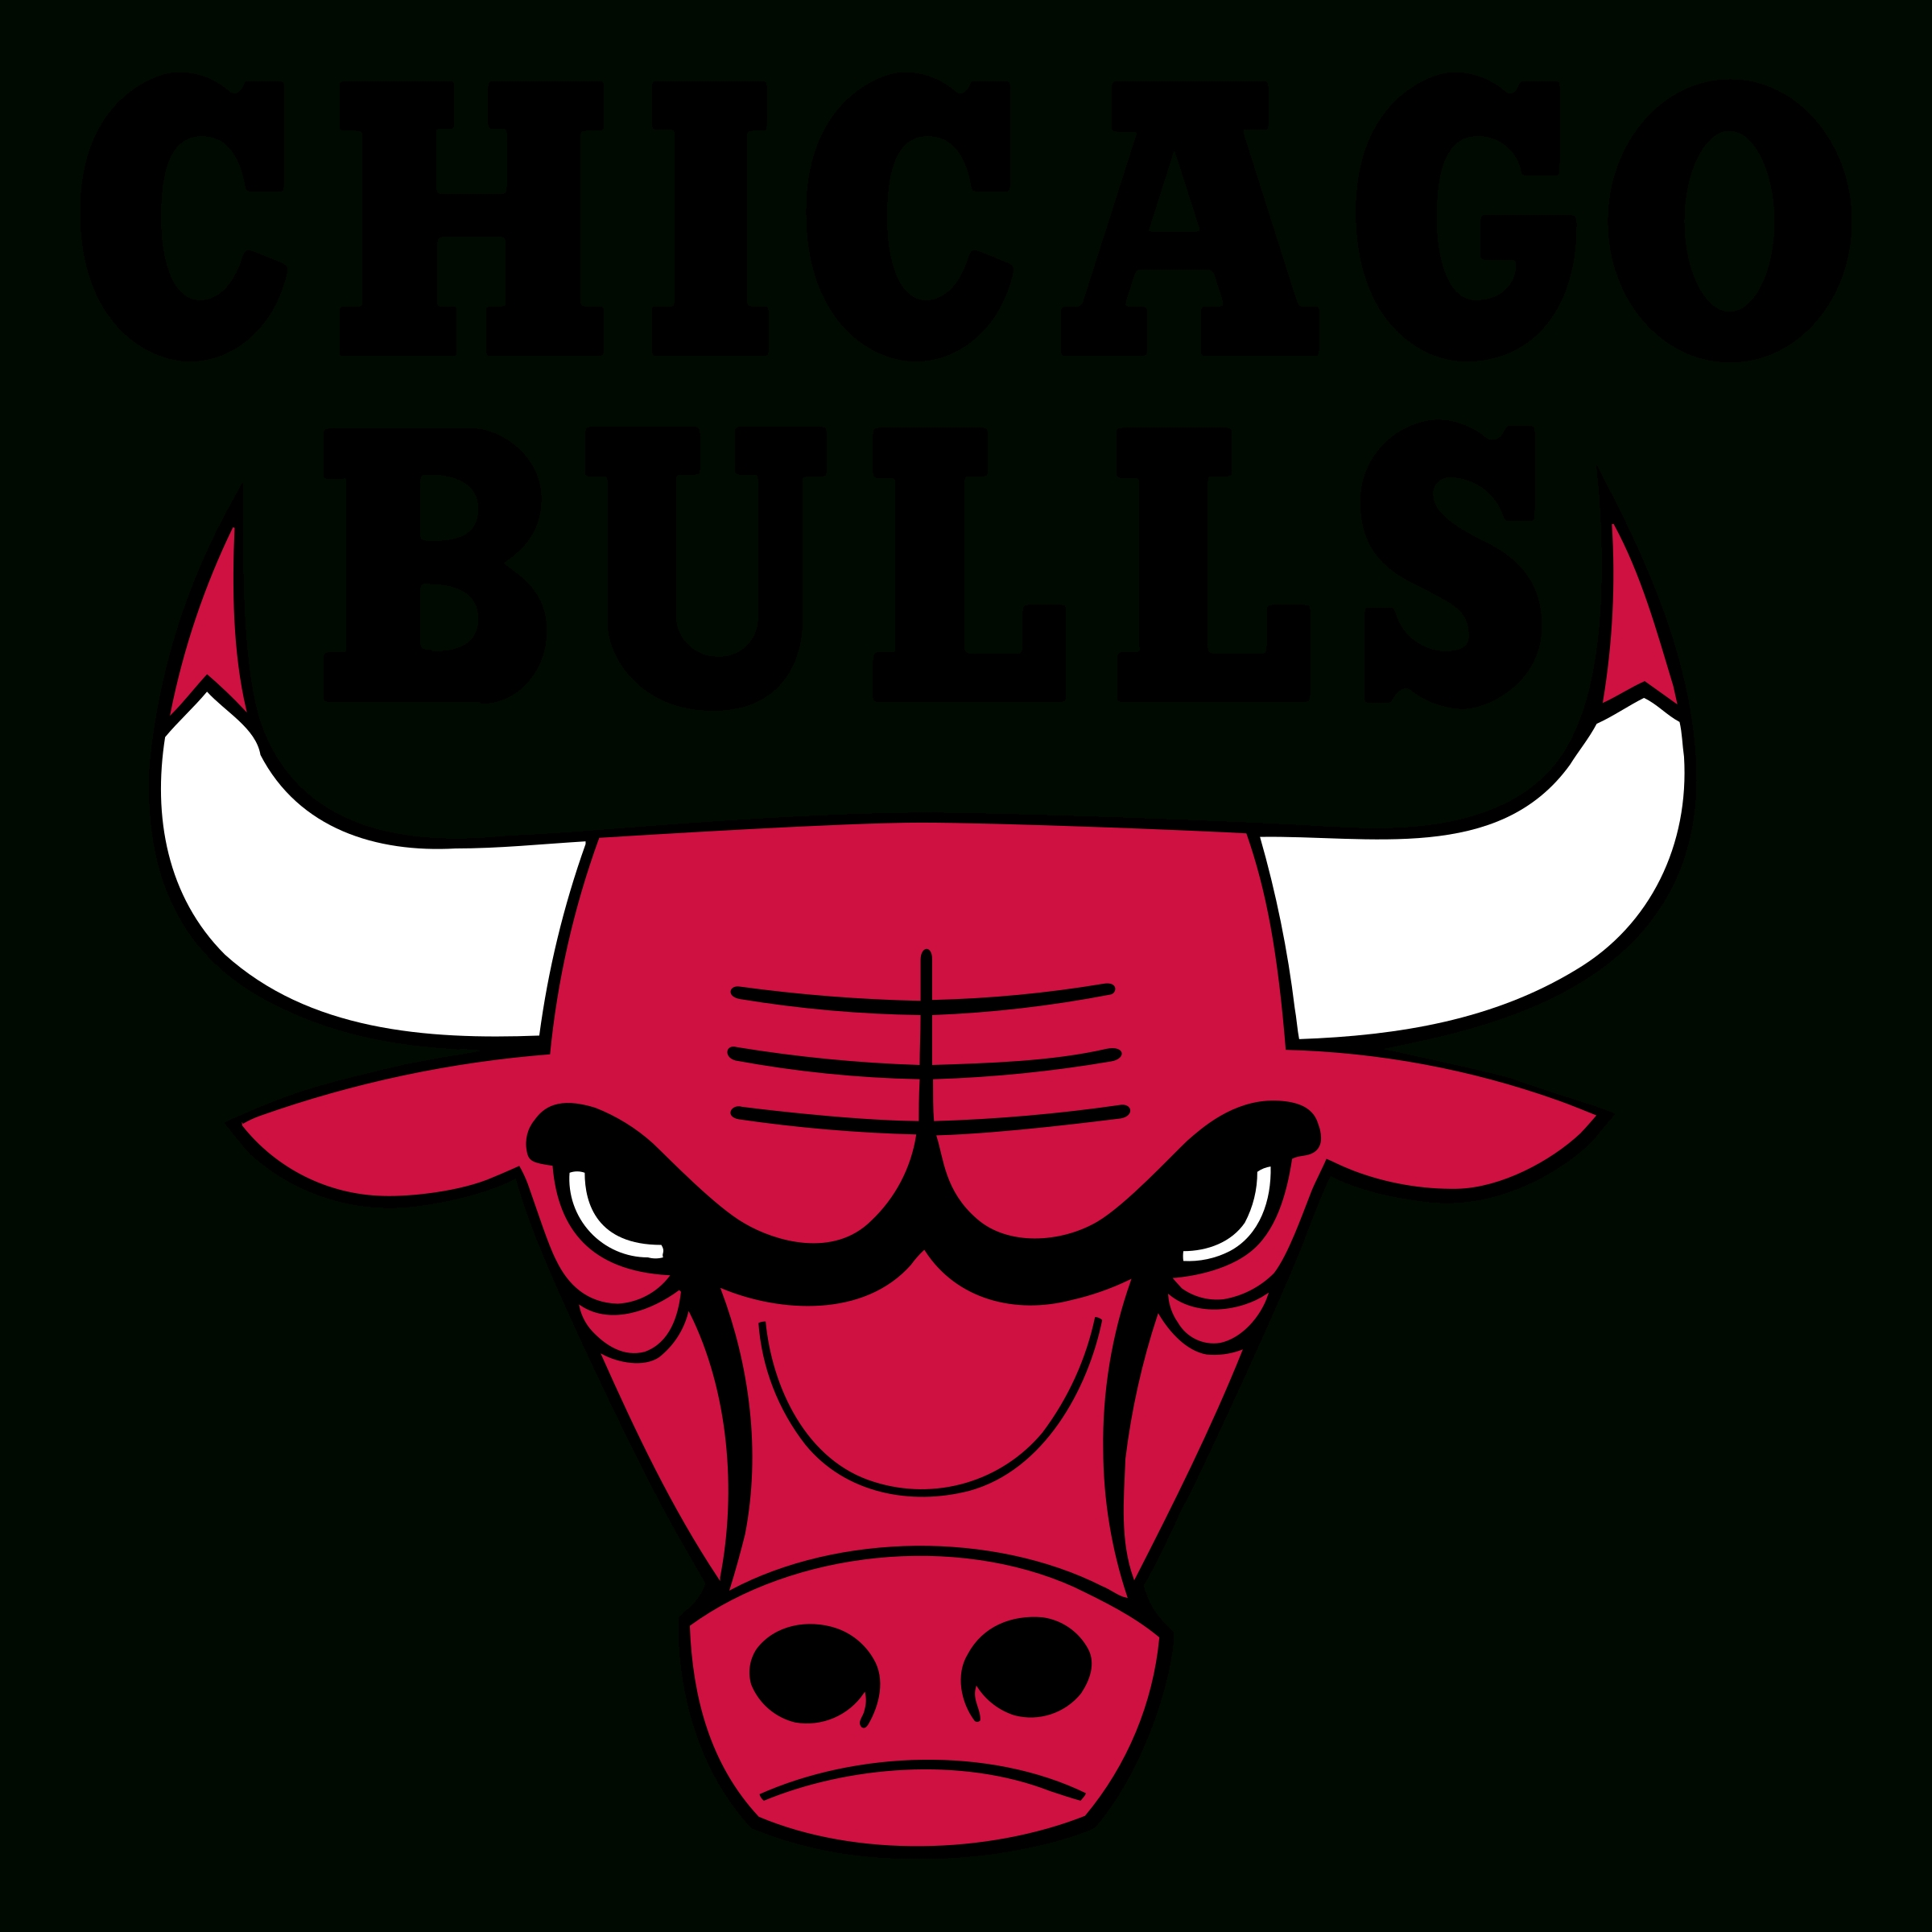 10 new chicago bulls pictures logo full hd 1080p for pc